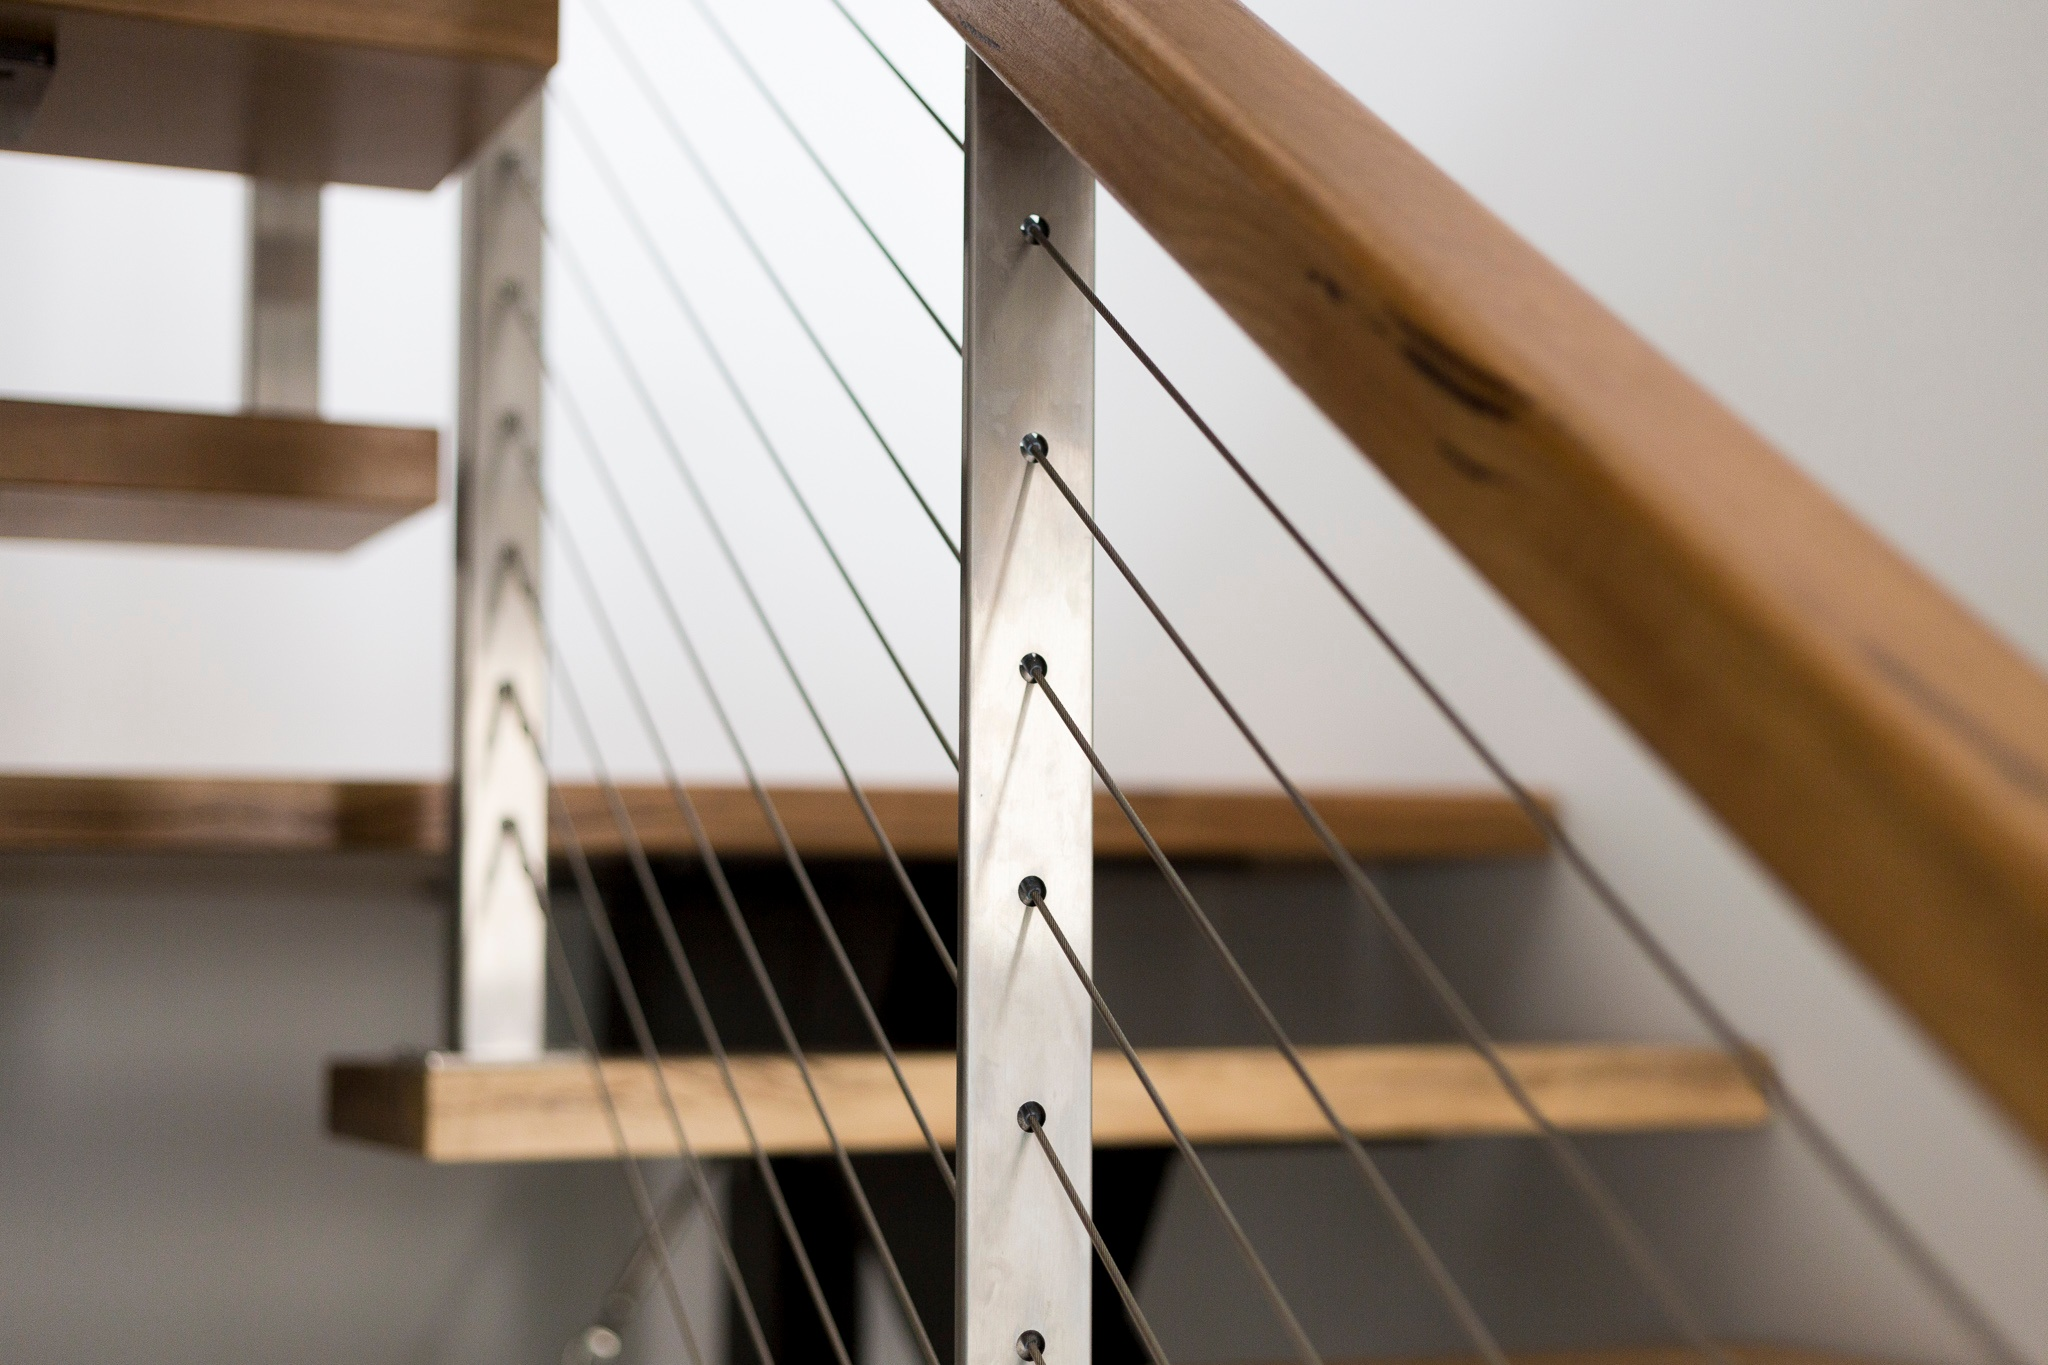 Balustrade Regulations For Wire.jpg